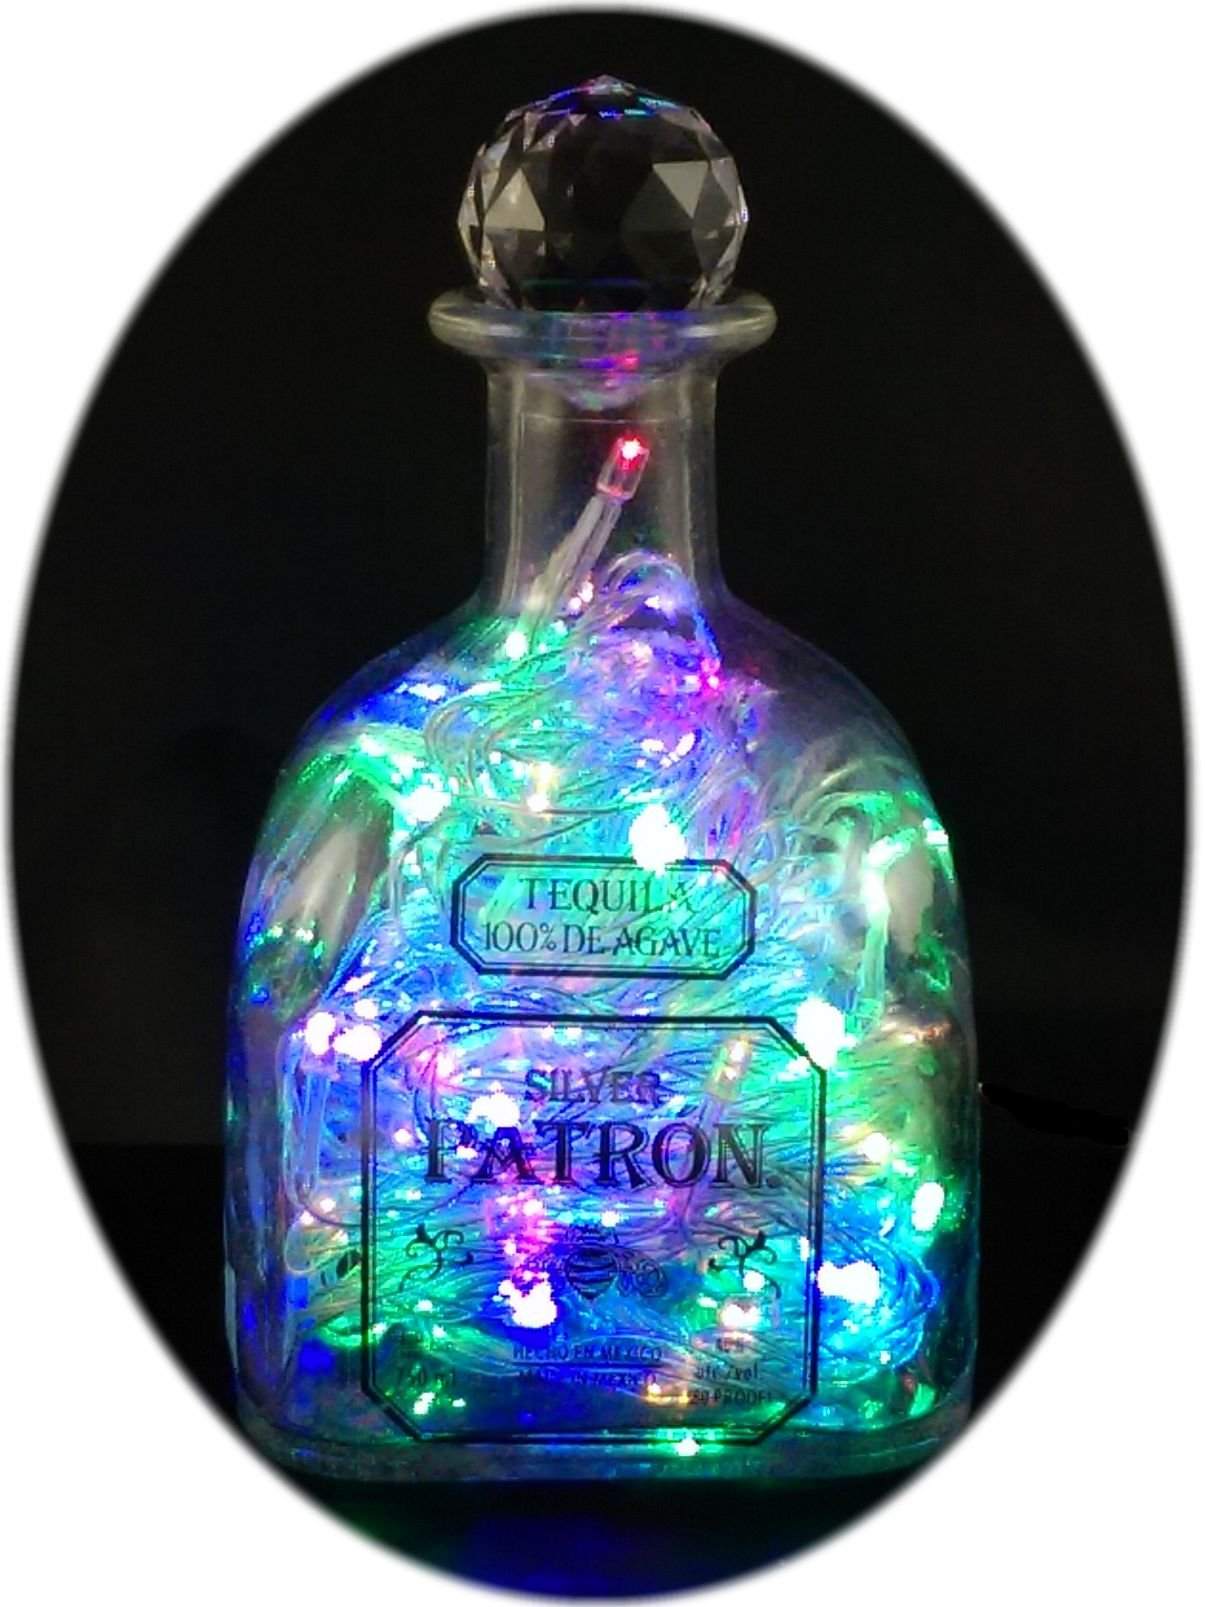 The Bottle Upcycler Upcycled Patron Tequila Mood Therapy Liquor Bottle Light with Multi-color Leds Topped with an Asfour 30% Leaded Clear Crystal Prism Ball by The Bottle Upcycler